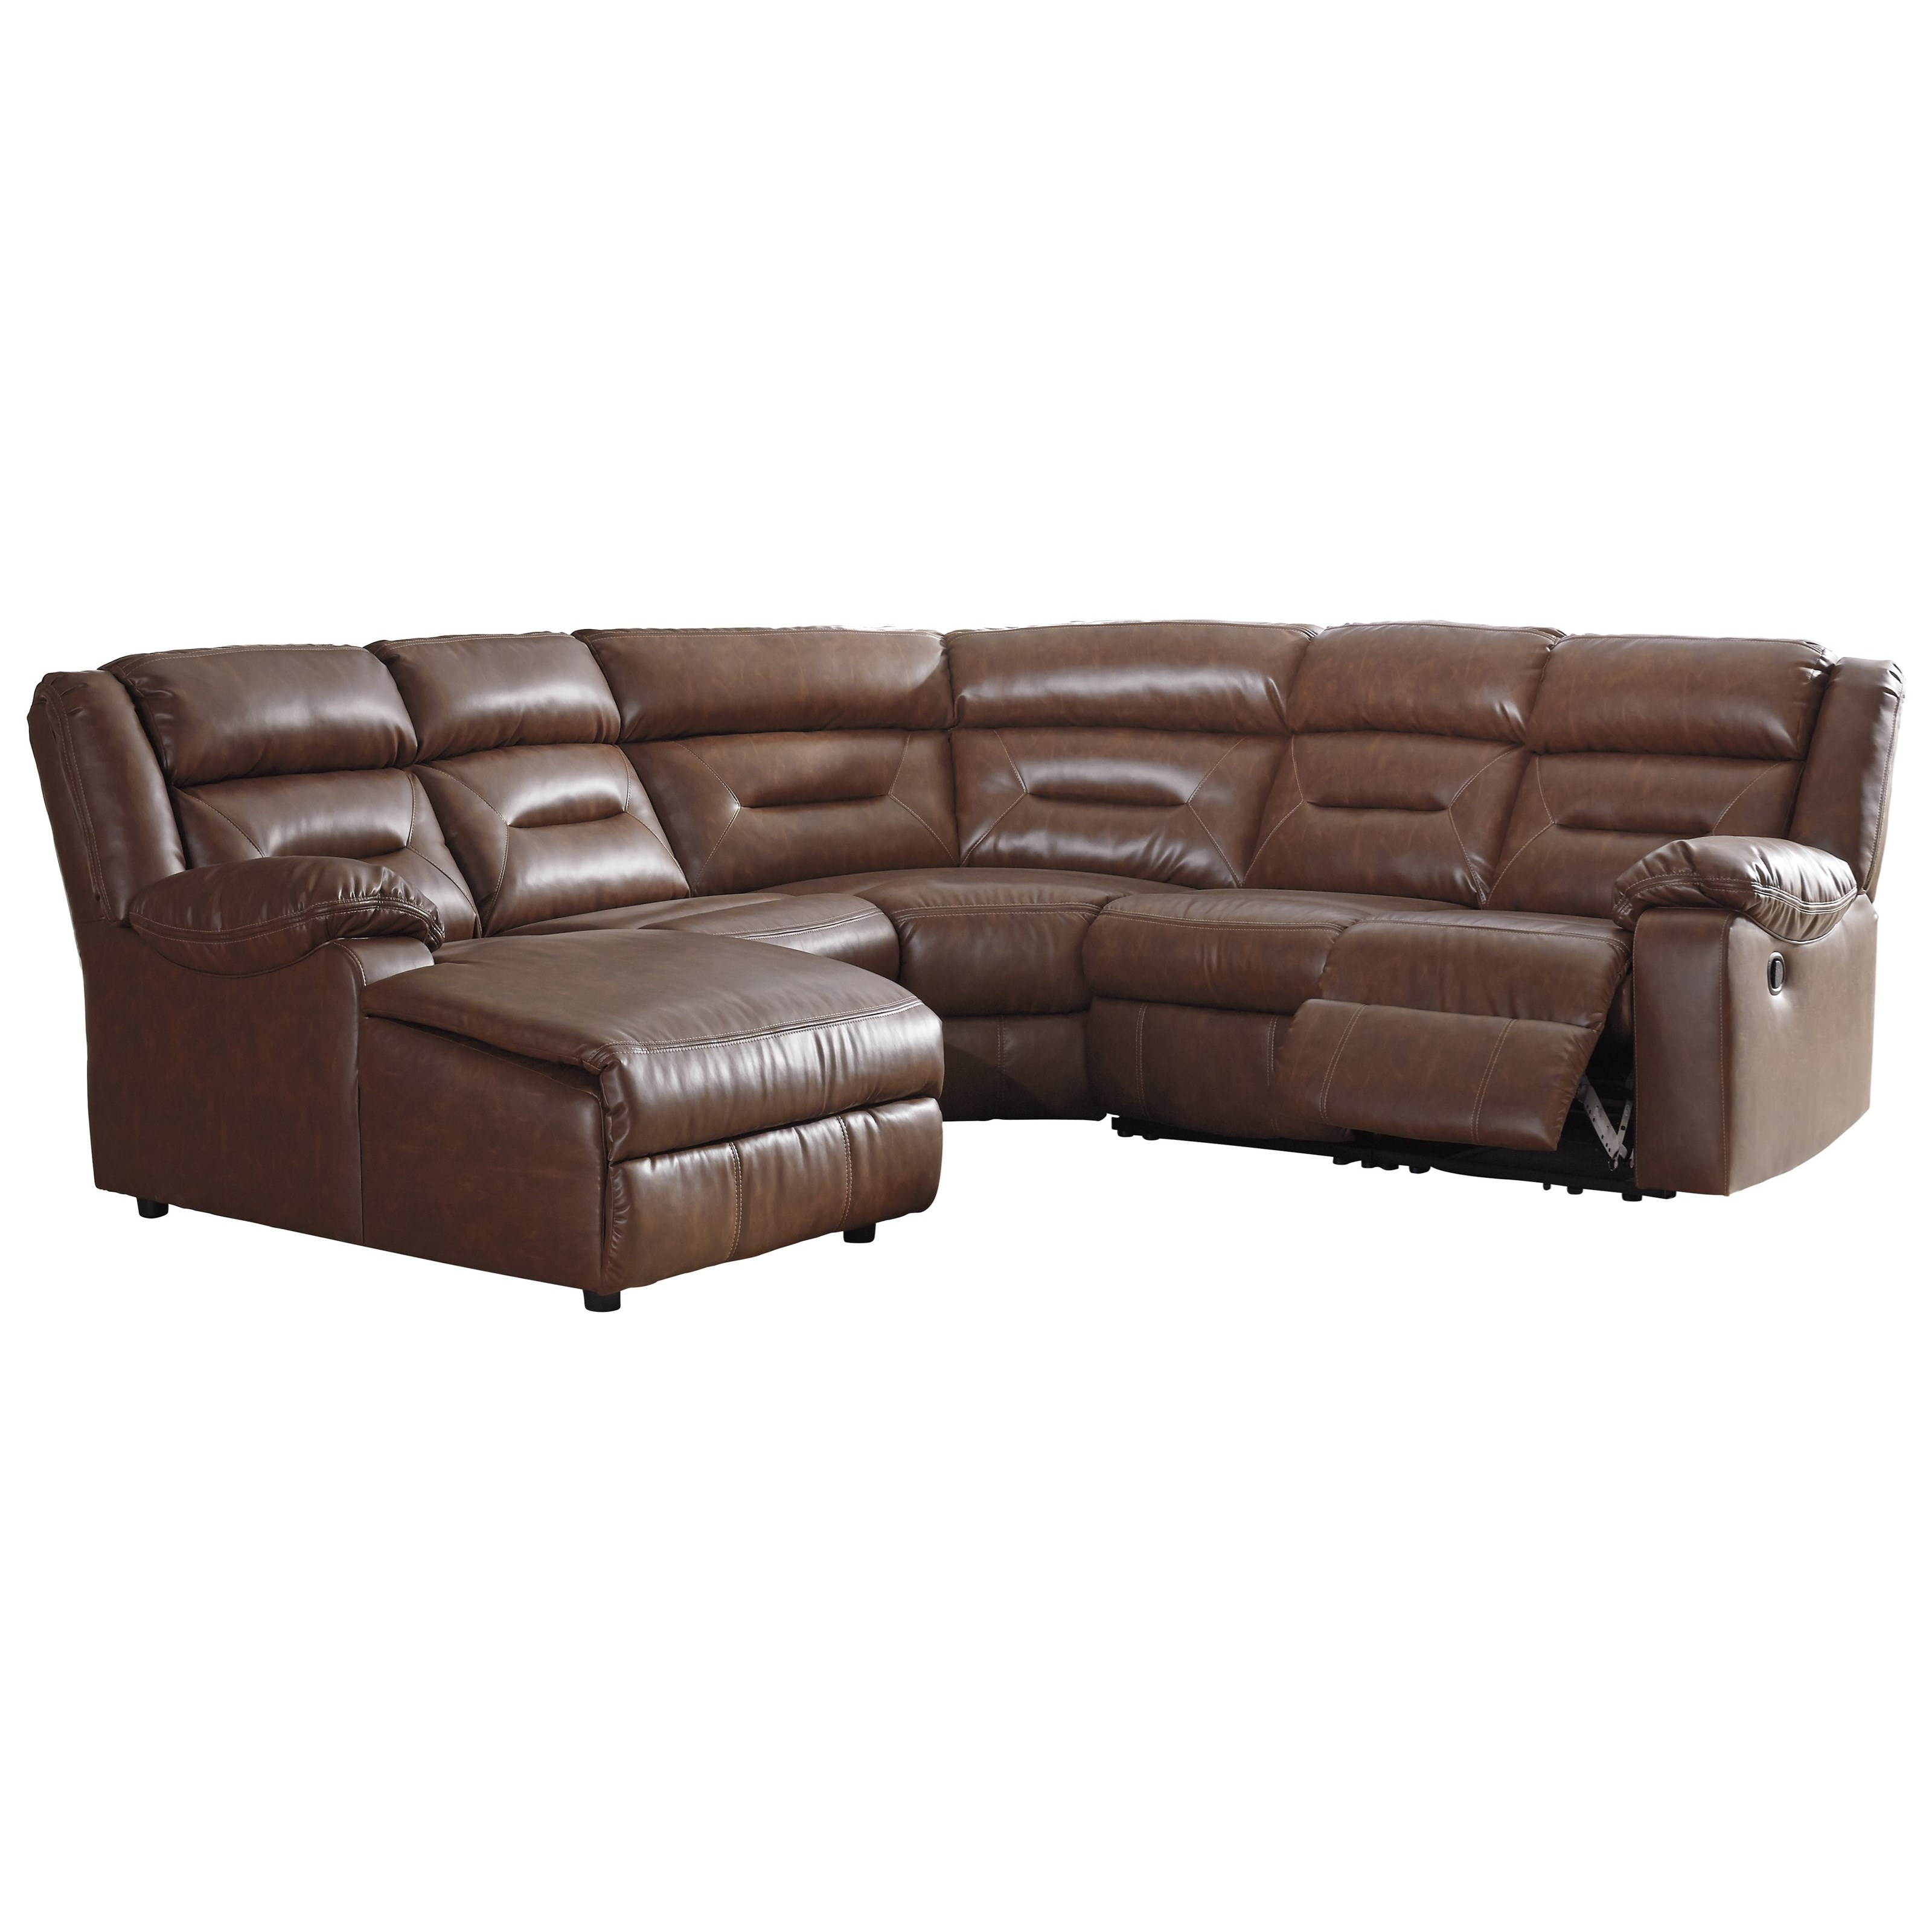 Coahoma 5 Piece Sectional by Signature Design by Ashley at Lapeer Furniture & Mattress Center